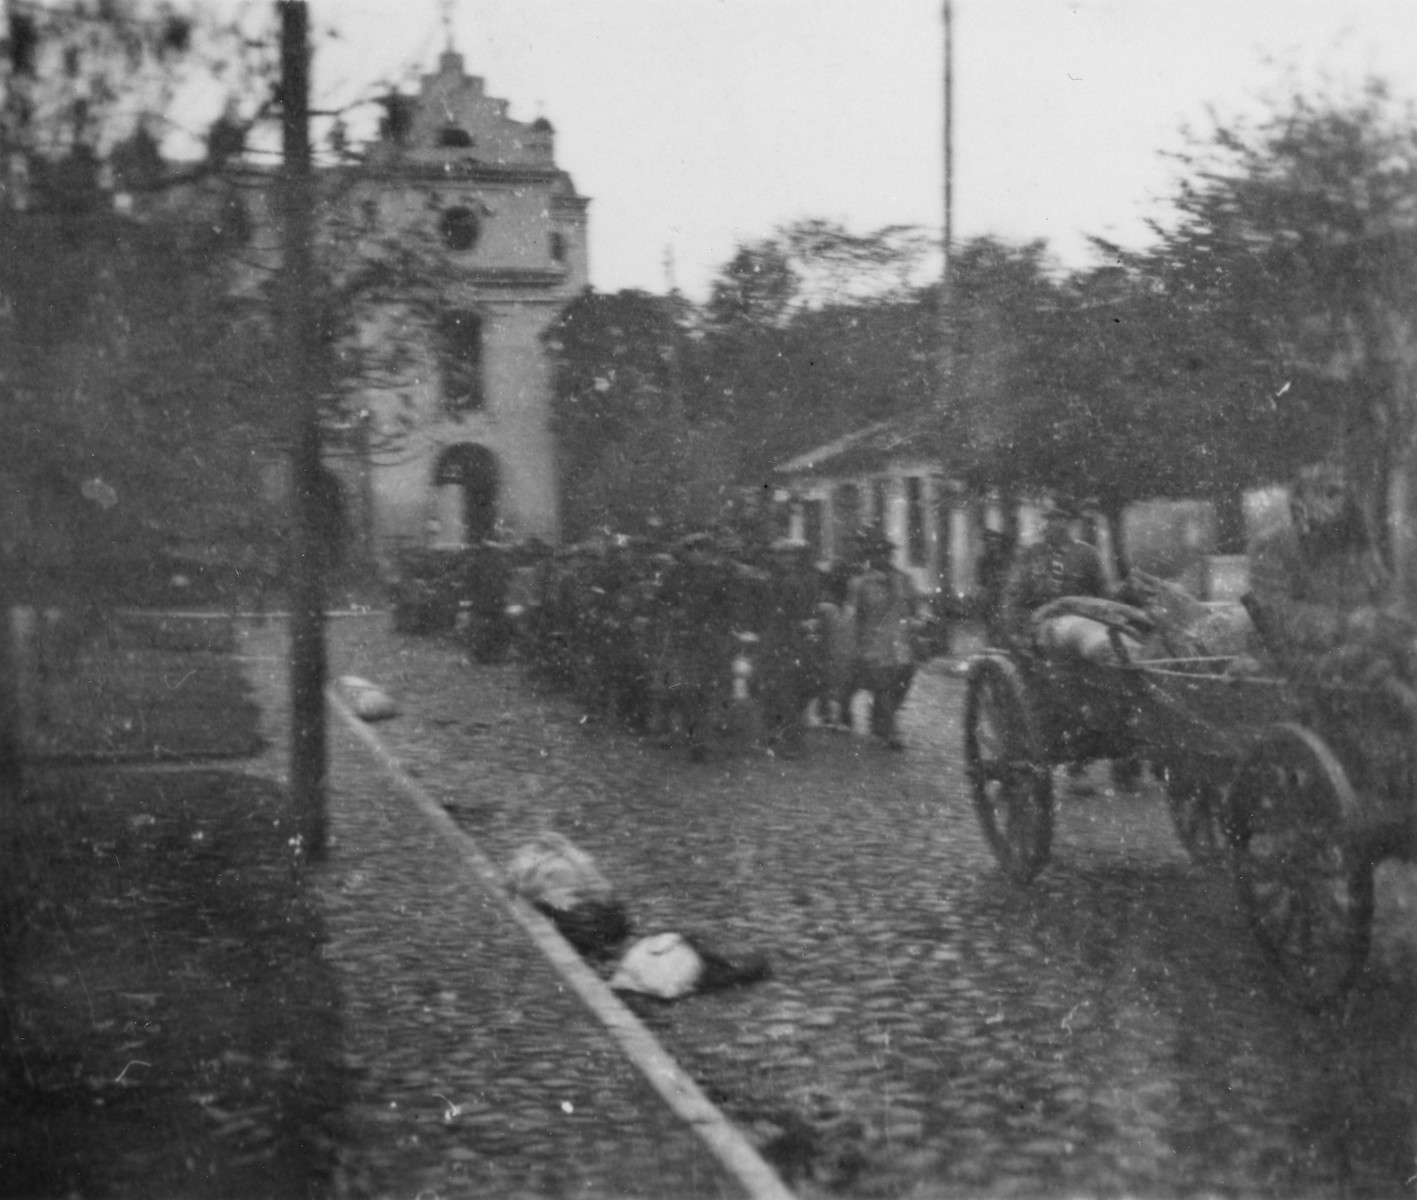 A column of Jews walks behind a wagon on a cobblestone street during a deportation action in the Wisznice ghetto.